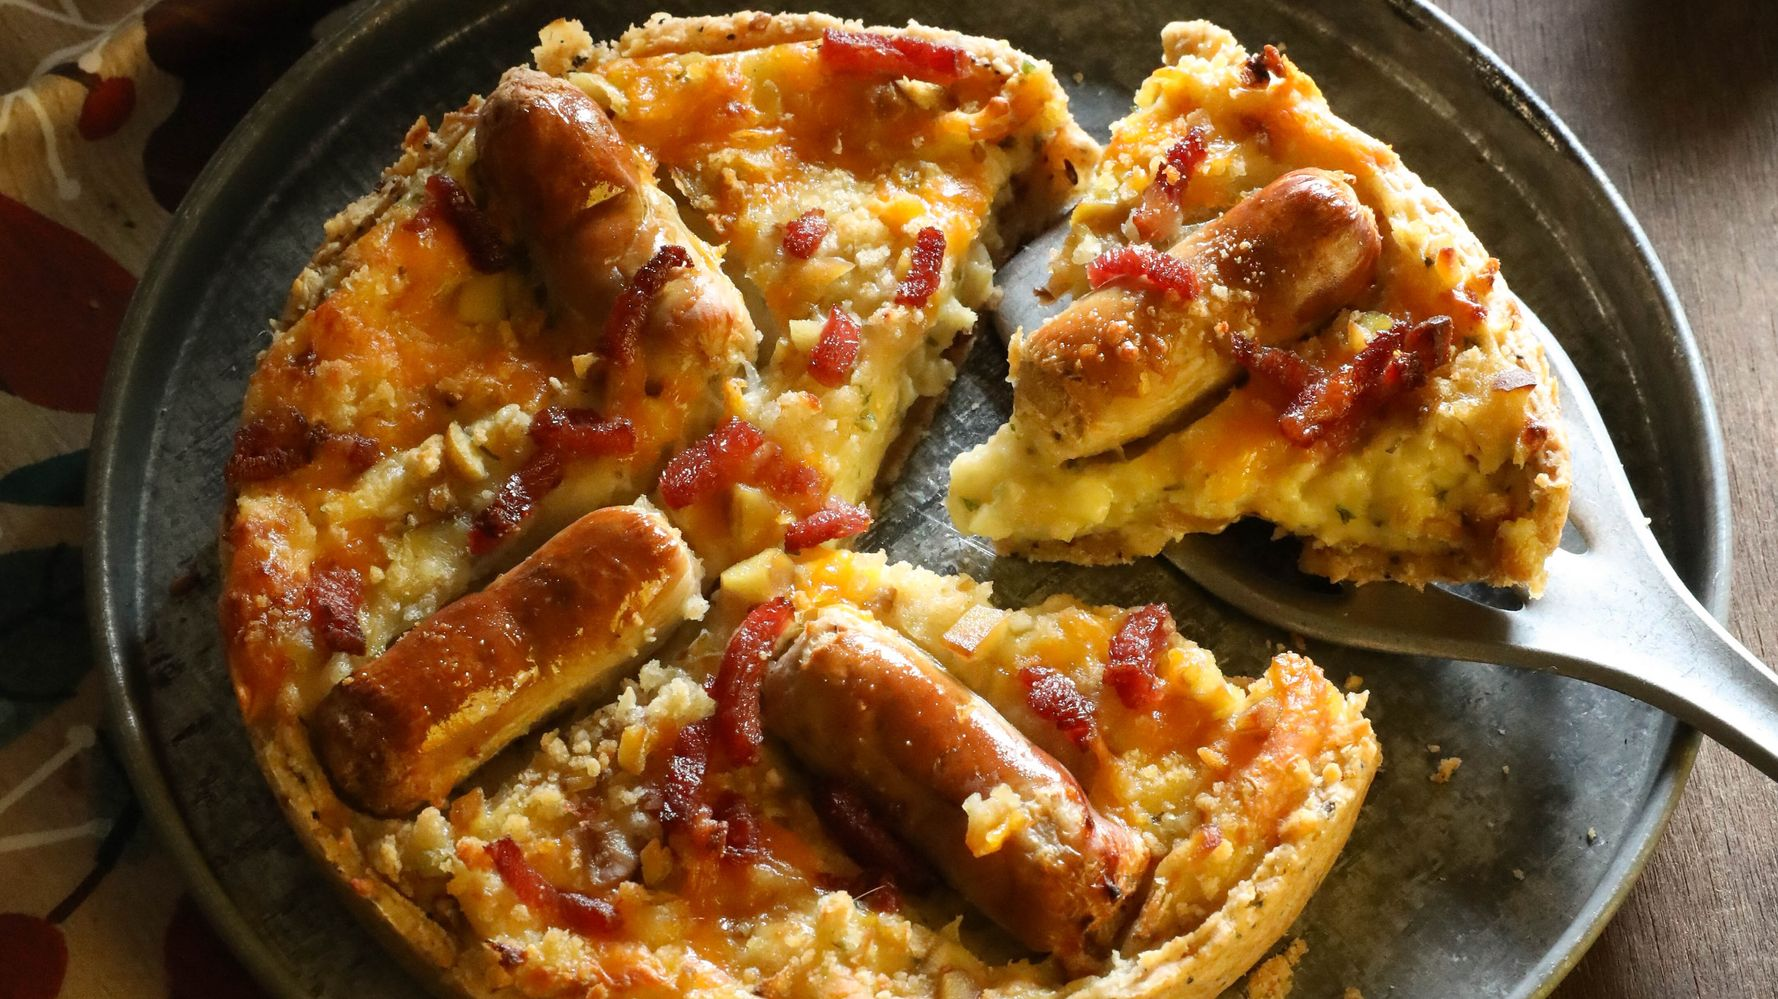 This Pigs In Blanket Cheesy Quiche Is A Festive Dinner Winner